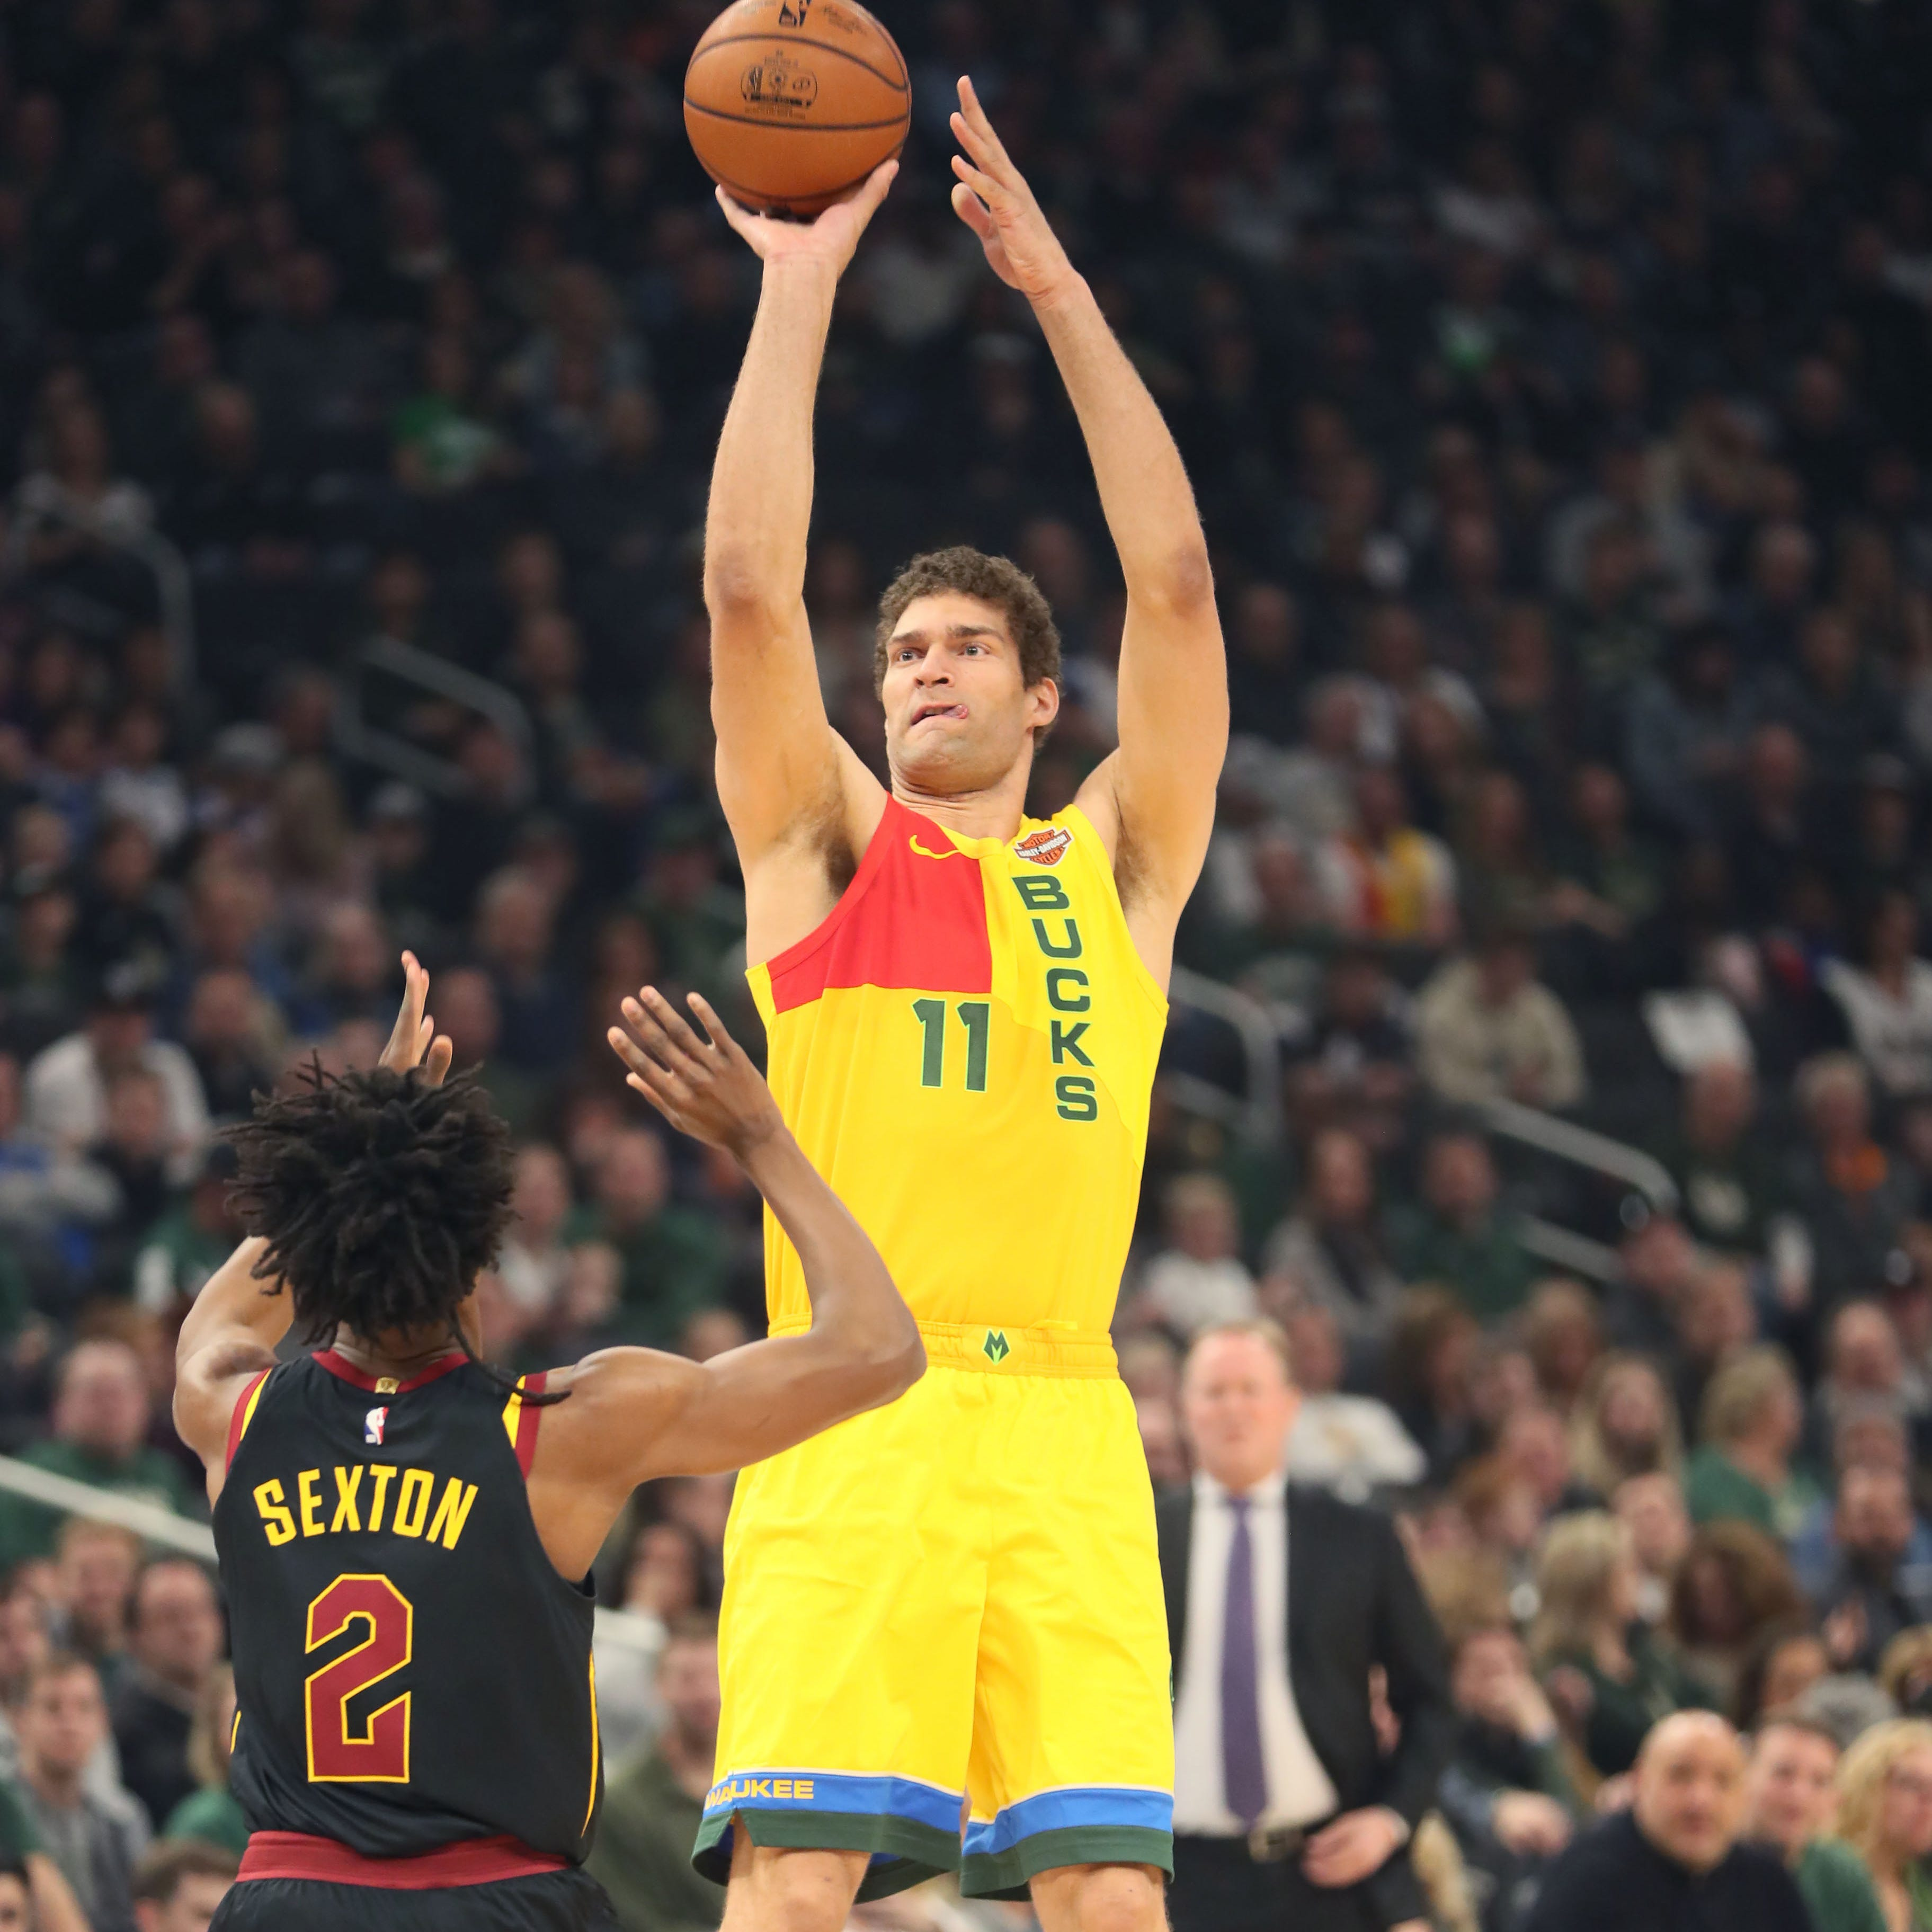 Nickel:  Seven-foot-tall Brook Lopez is one of the best shooters in the NBA. Here's why.